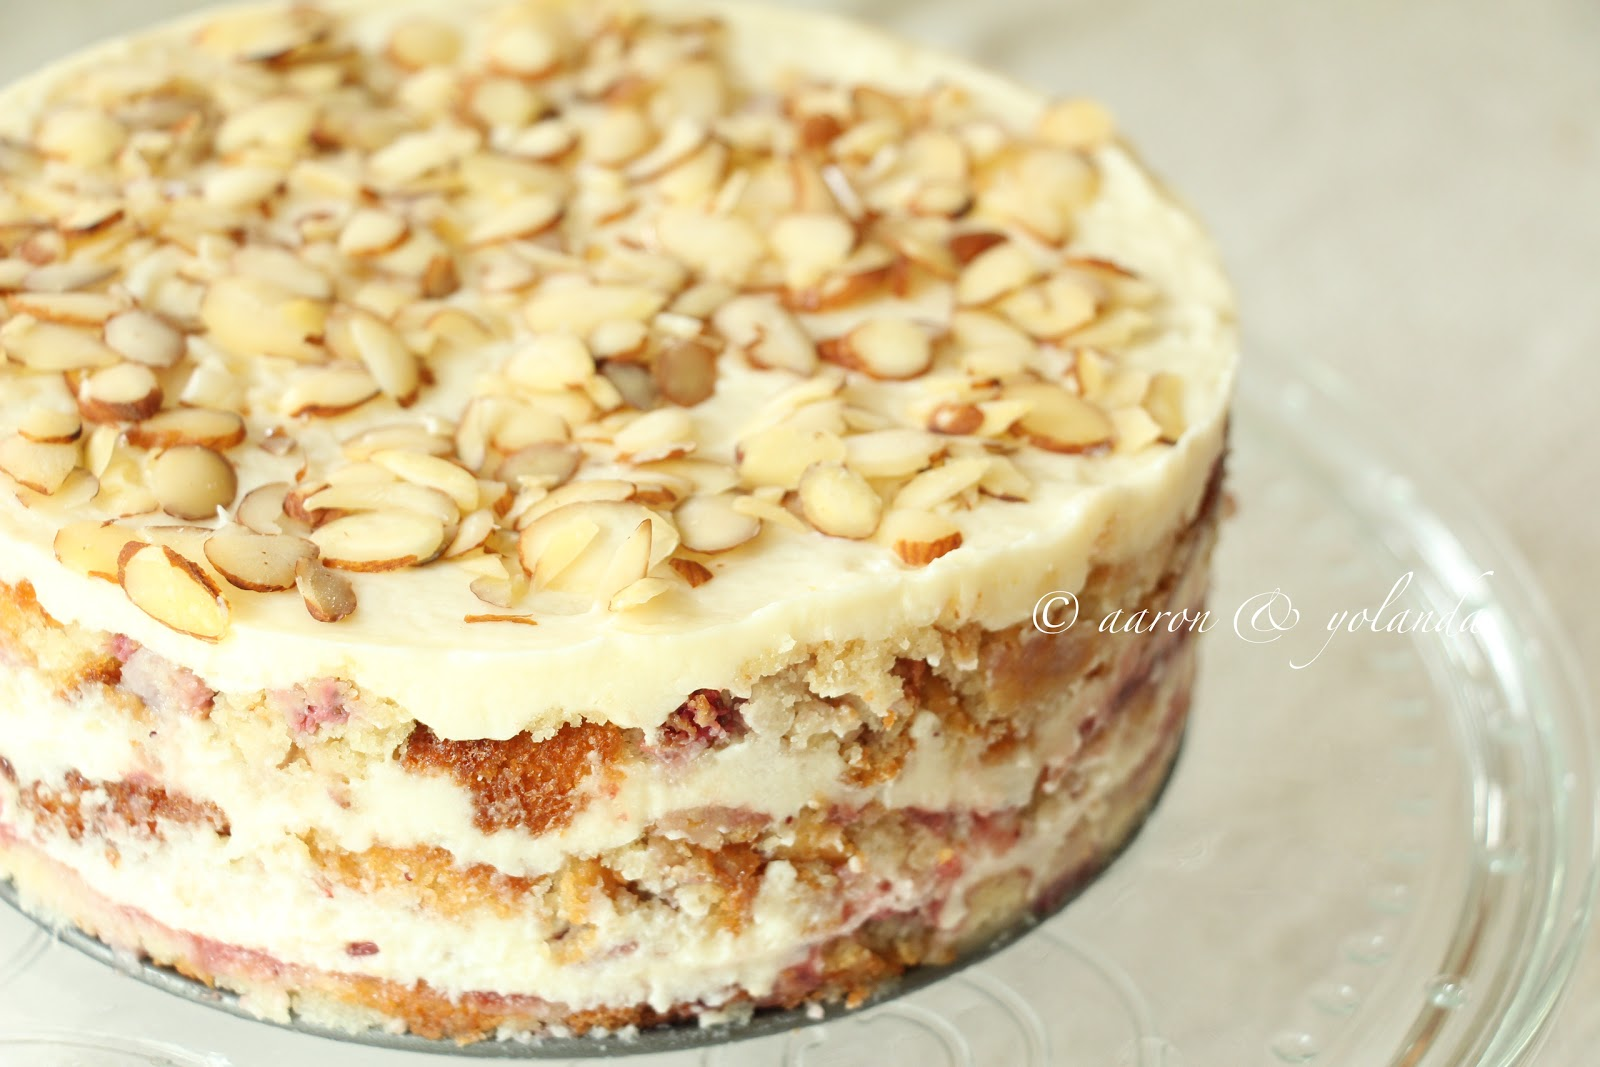 Inspired by Life: Strawberry Almond Layer Cake